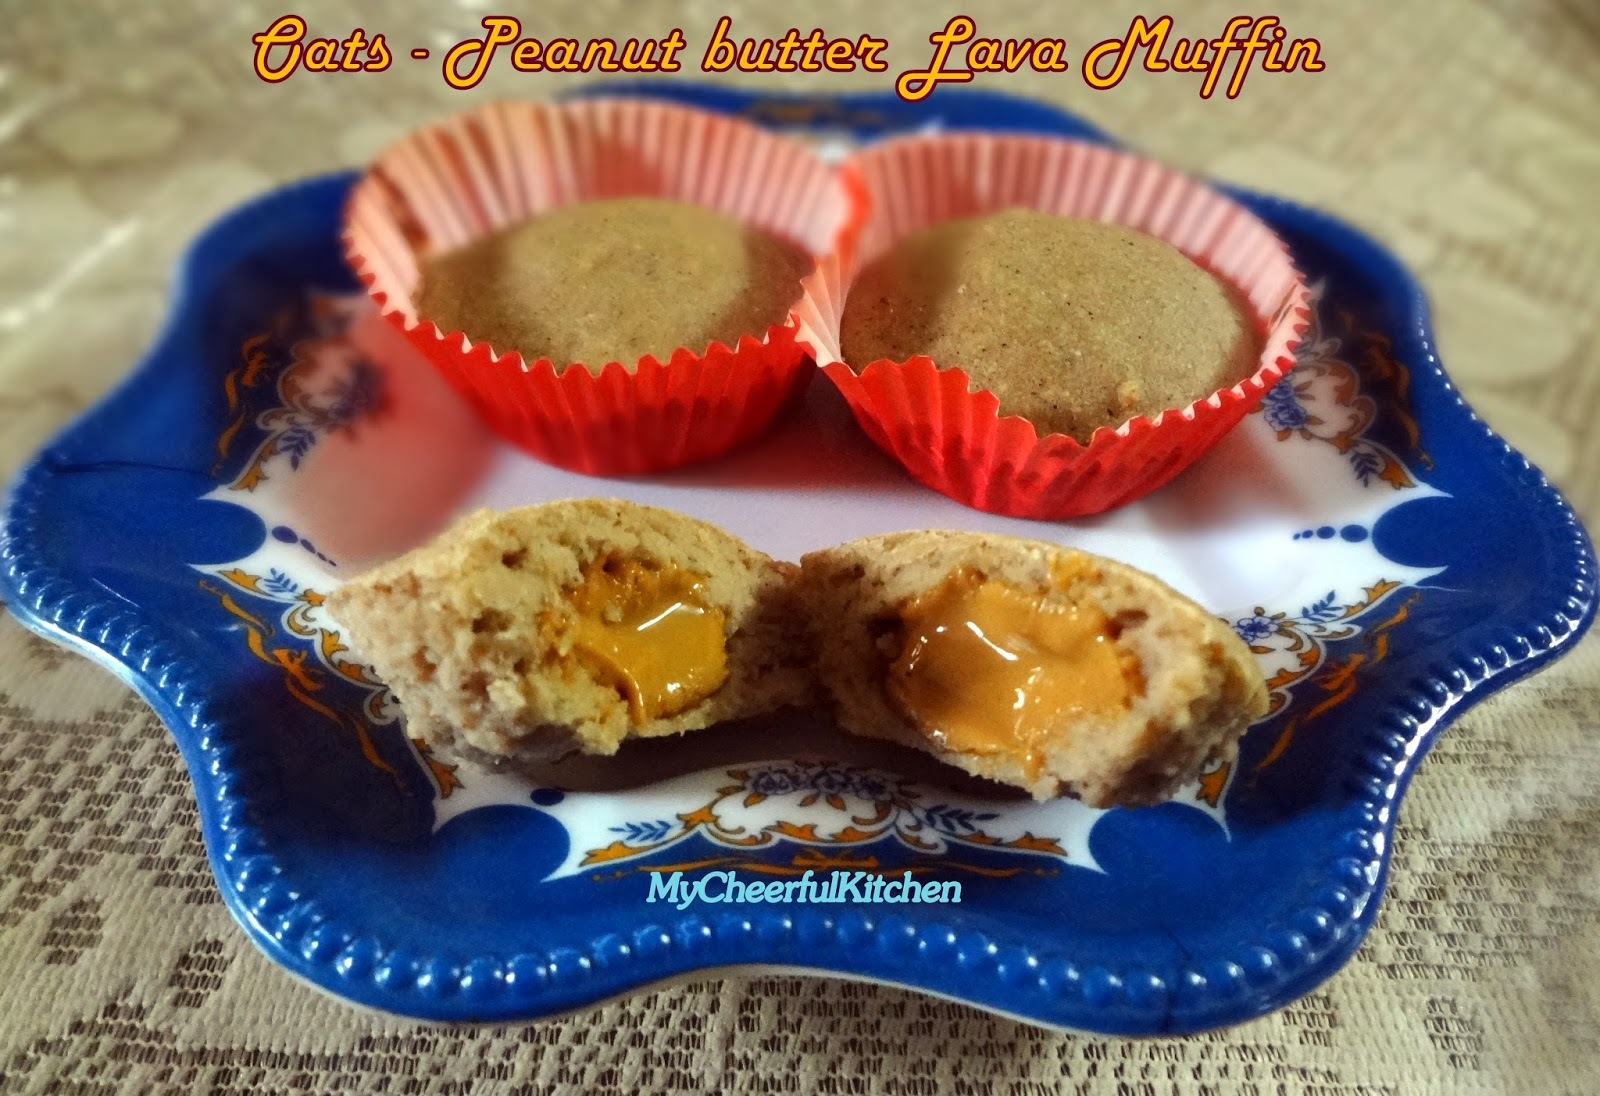 Oats - Peanut butter lava muffin